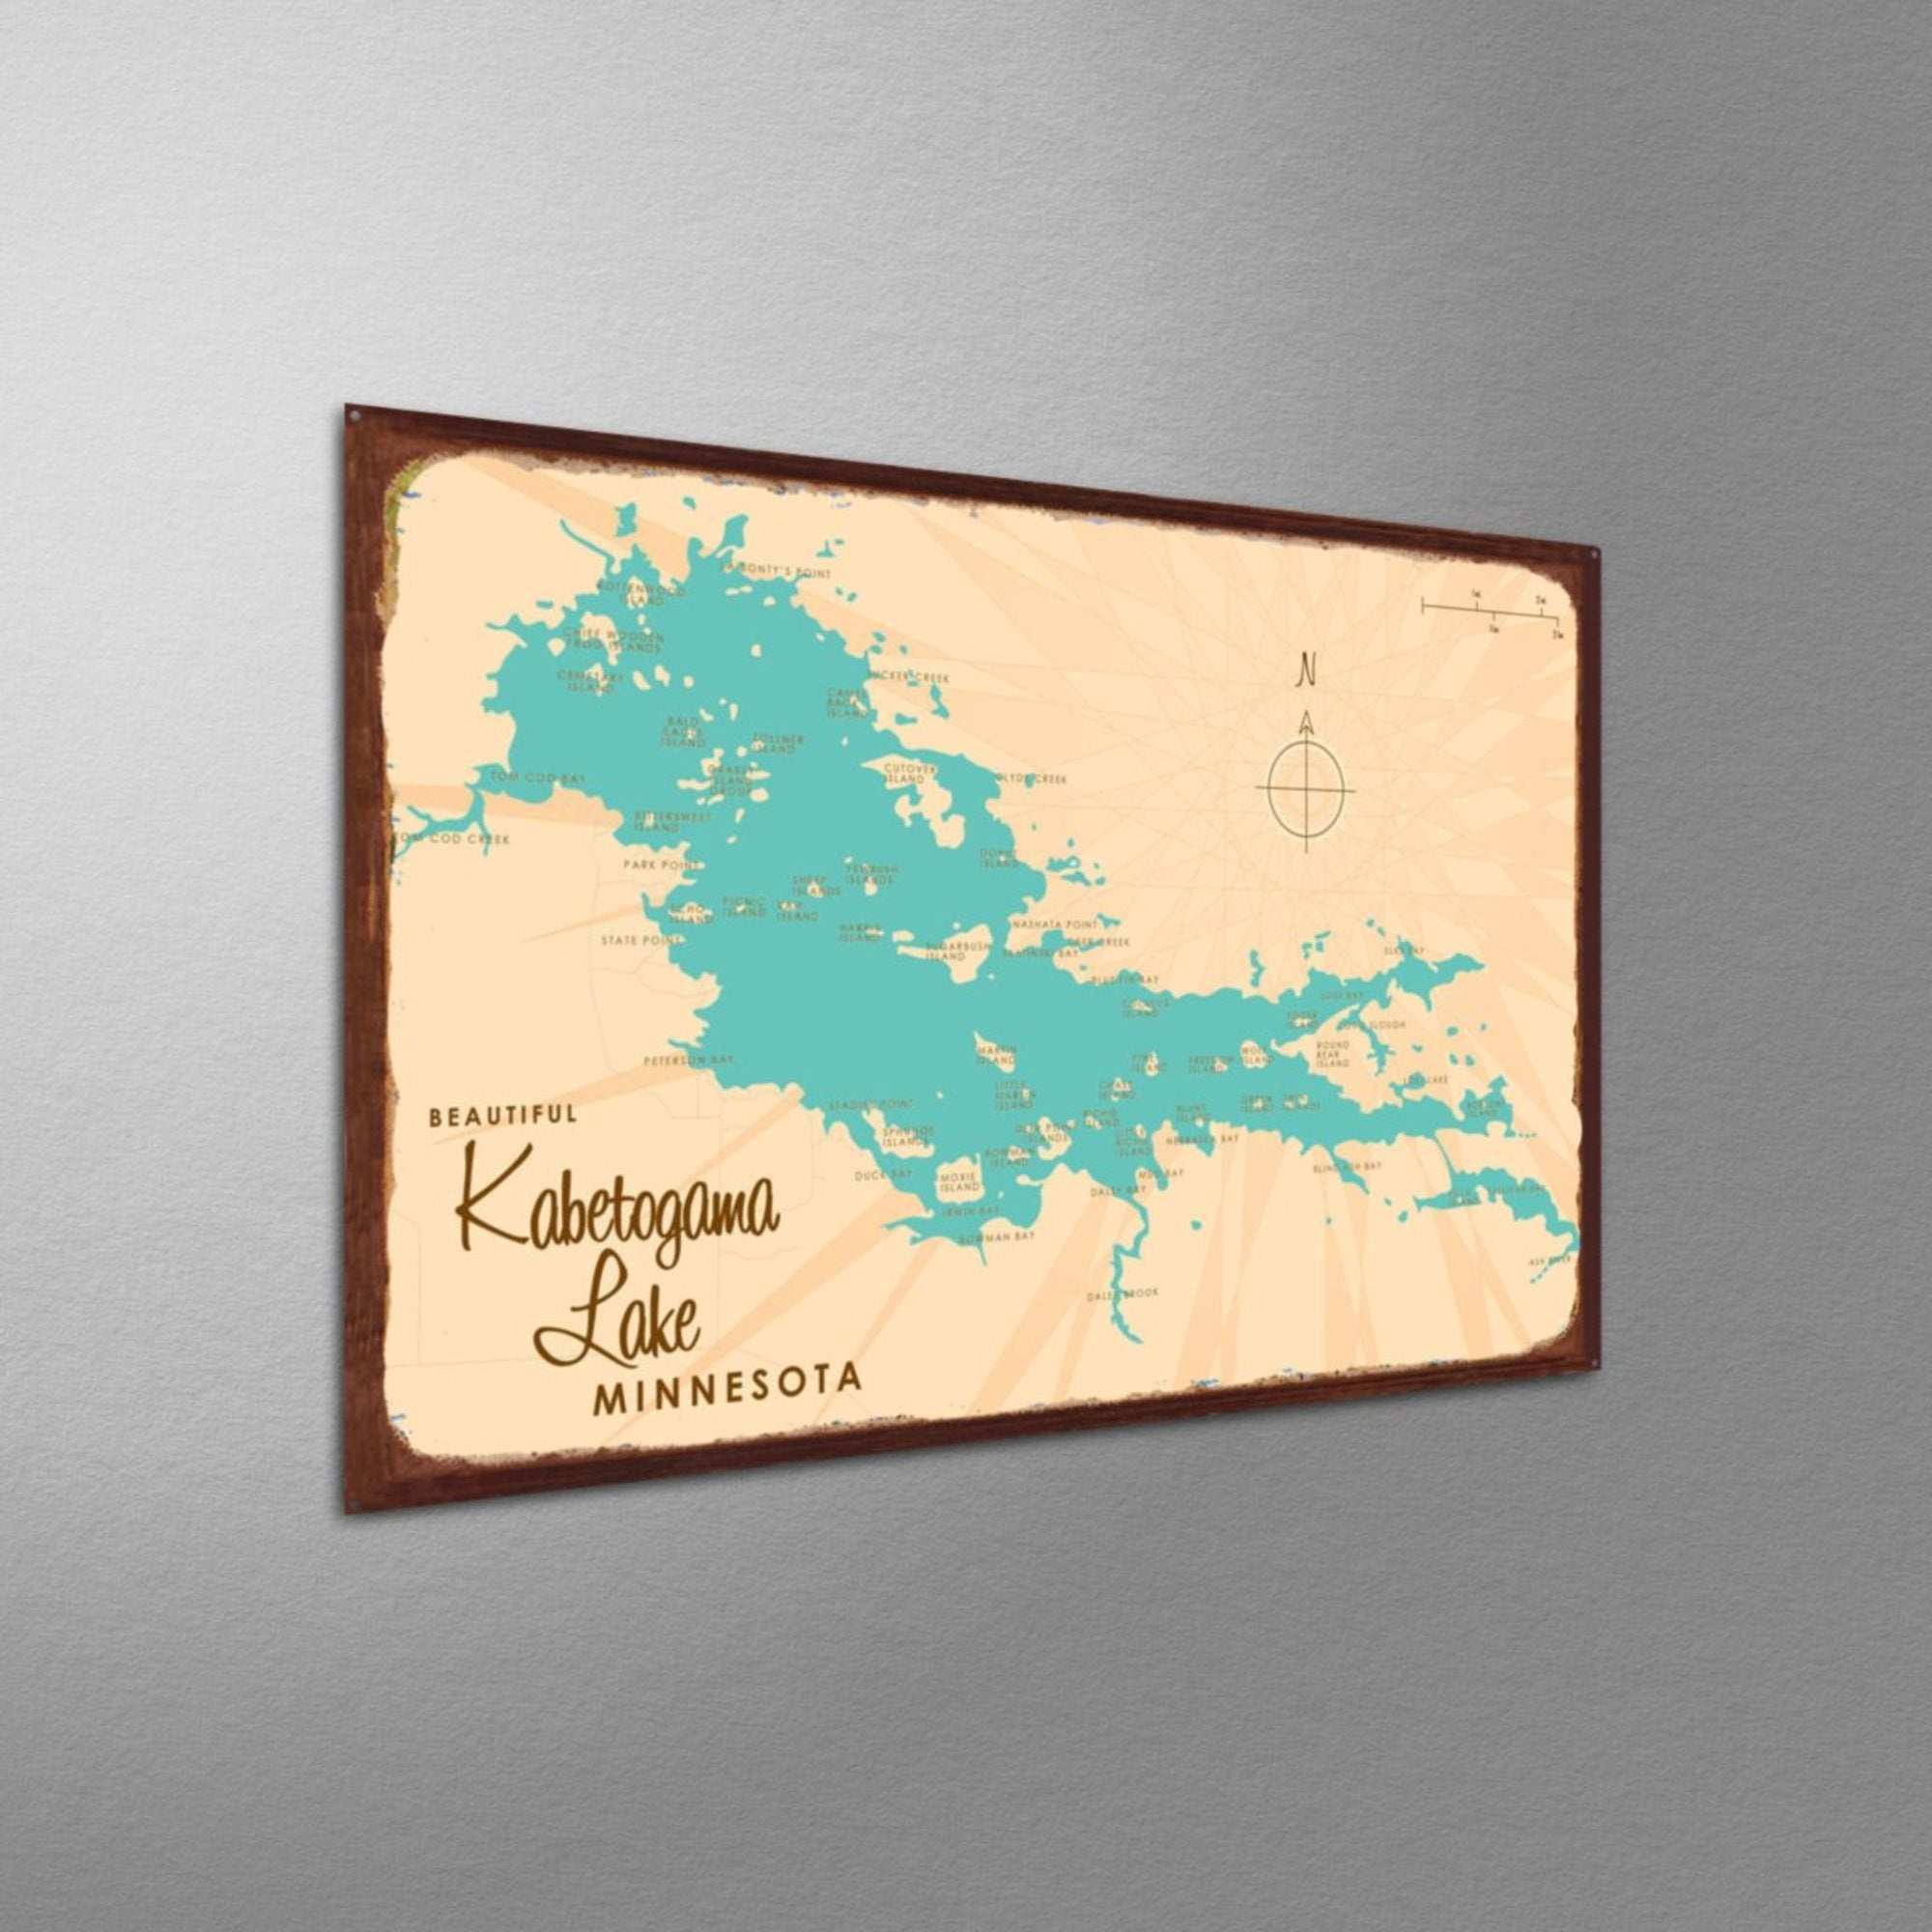 Kabetogama Lake Minnesota, Rustic Metal Sign Map Art